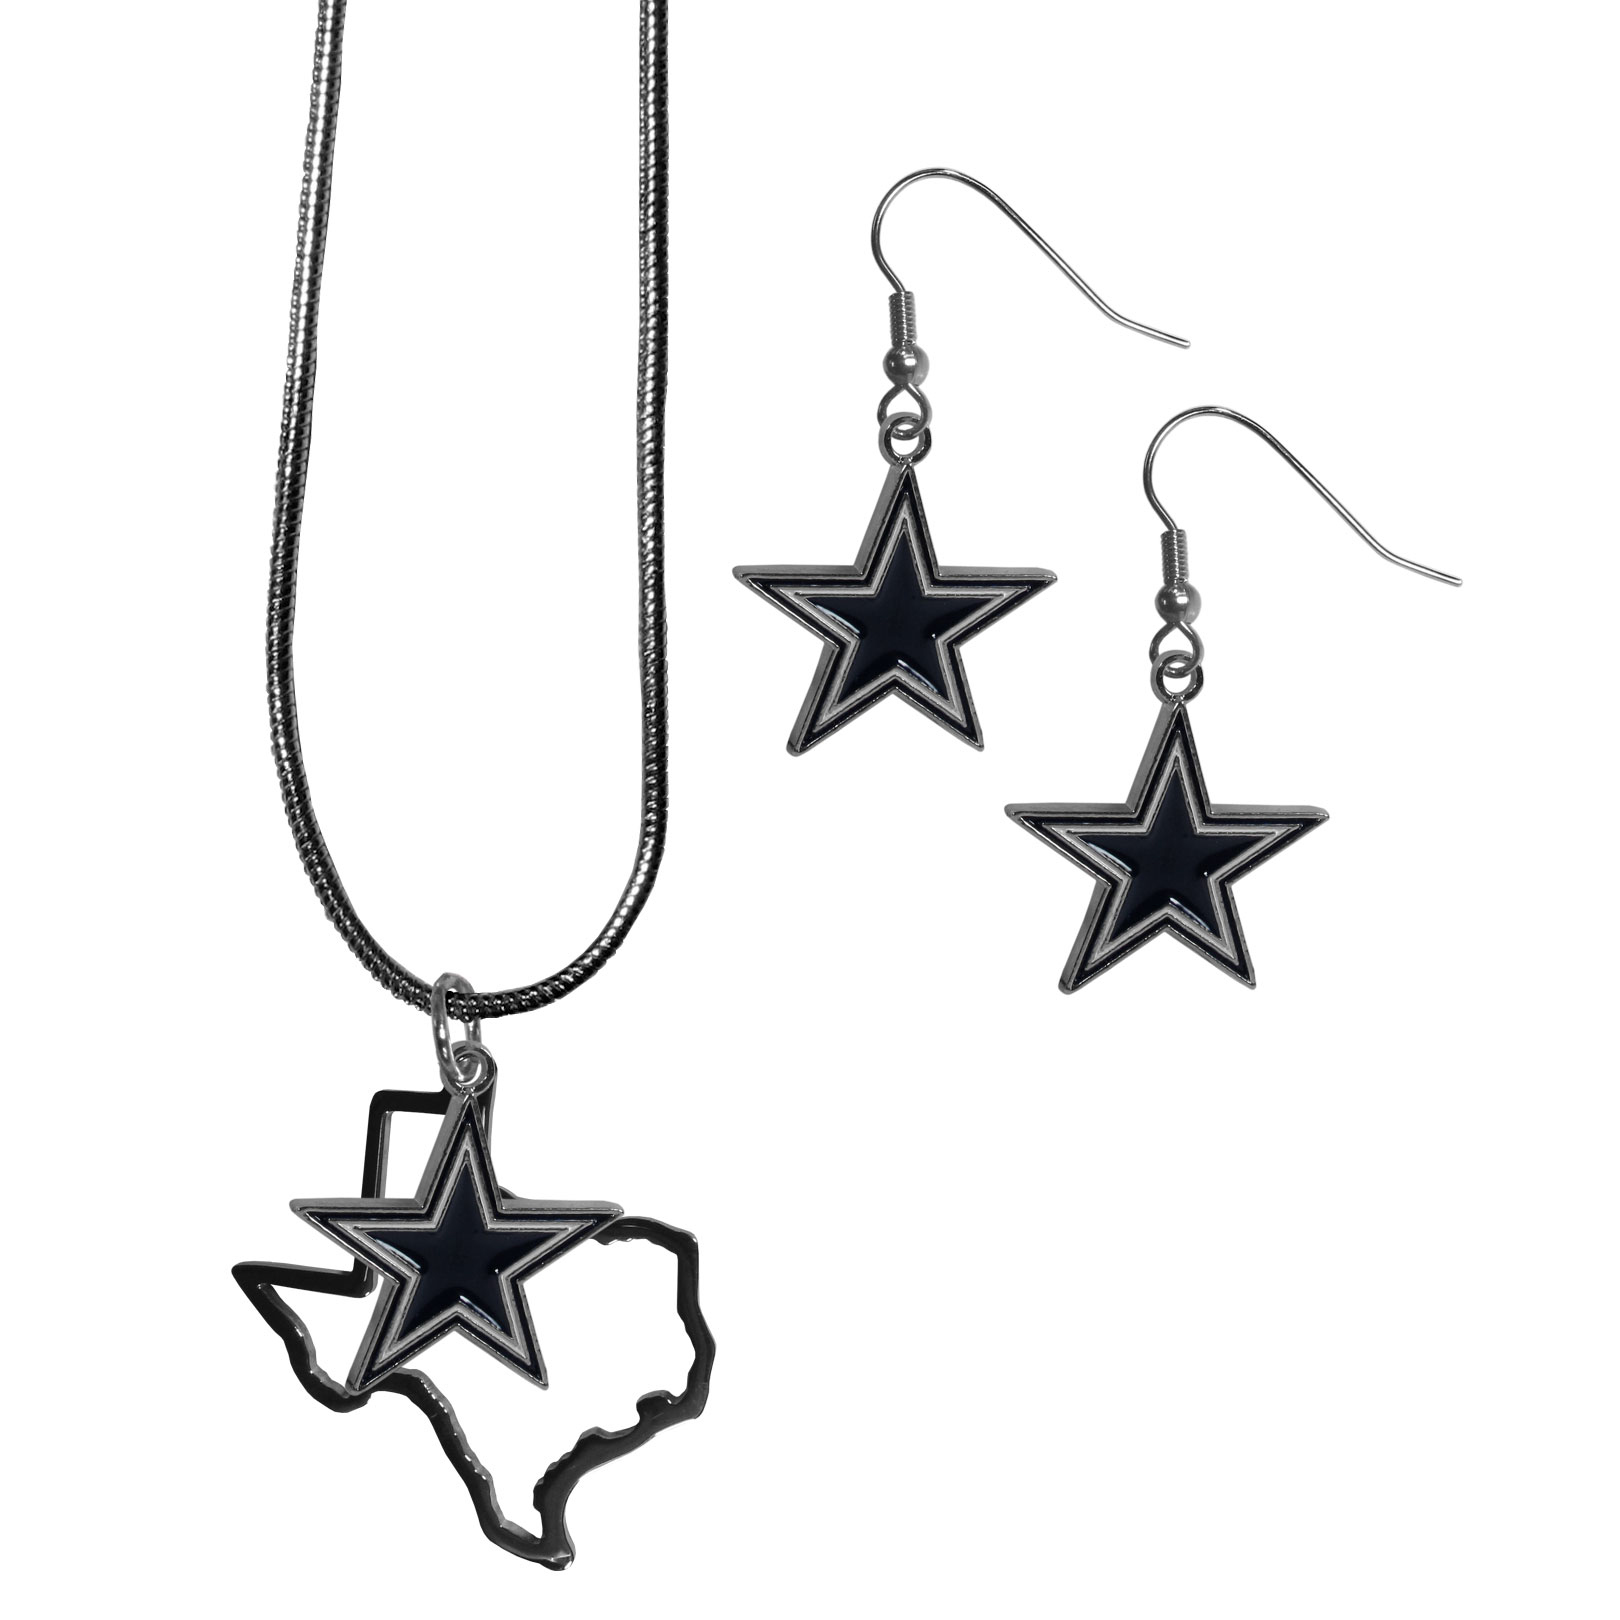 Dallas Cowboys Dangle Earrings and State Necklace Set - Get in on the trend! State themes are a trend that just keeps getting more popular and this jewelry set takes the state style and give it a sporty twist with a Dallas Cowboys necklace that features an Arizona state outline charm paired with a beautiful team charm and matching team charm dangle earrings. The earrings feature hypoallergenic fishhook posts that are nickel free.